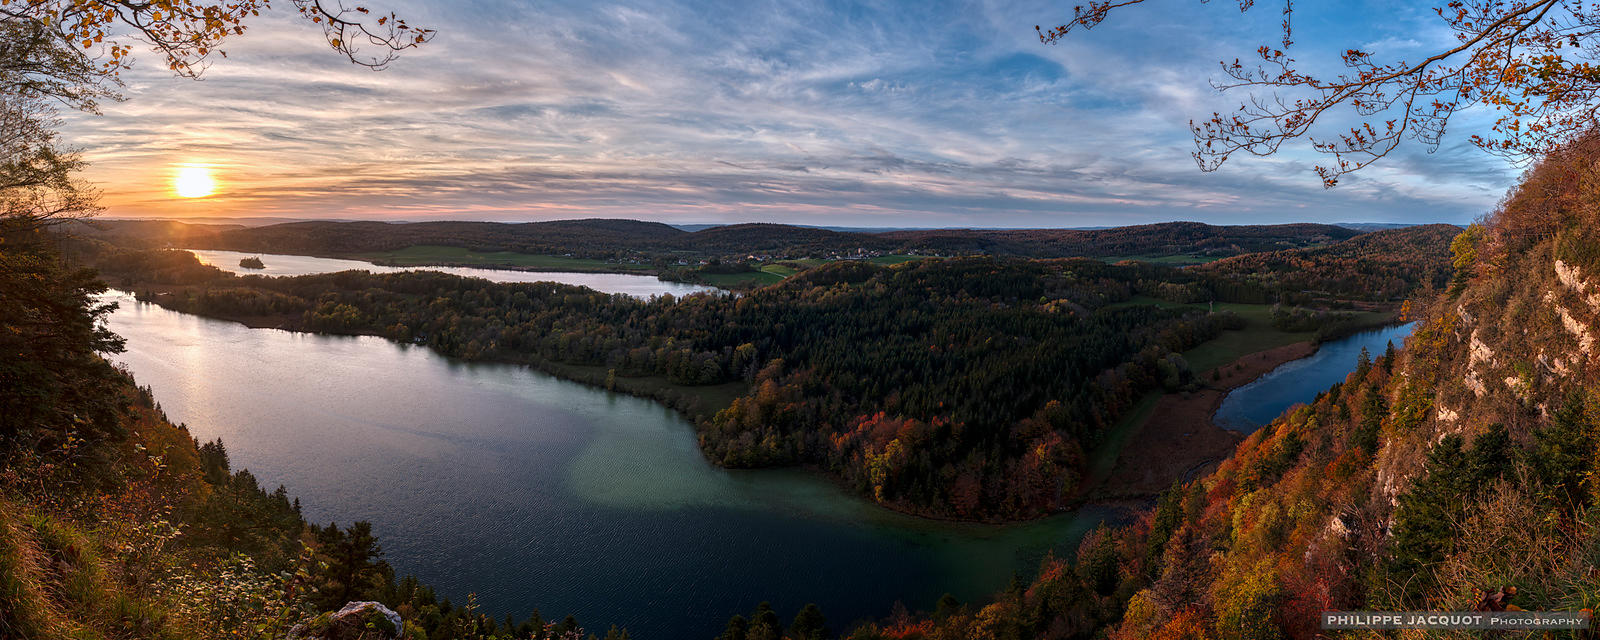 Sunset at the 4 lakes - Chaux du Dombief - Jura - France